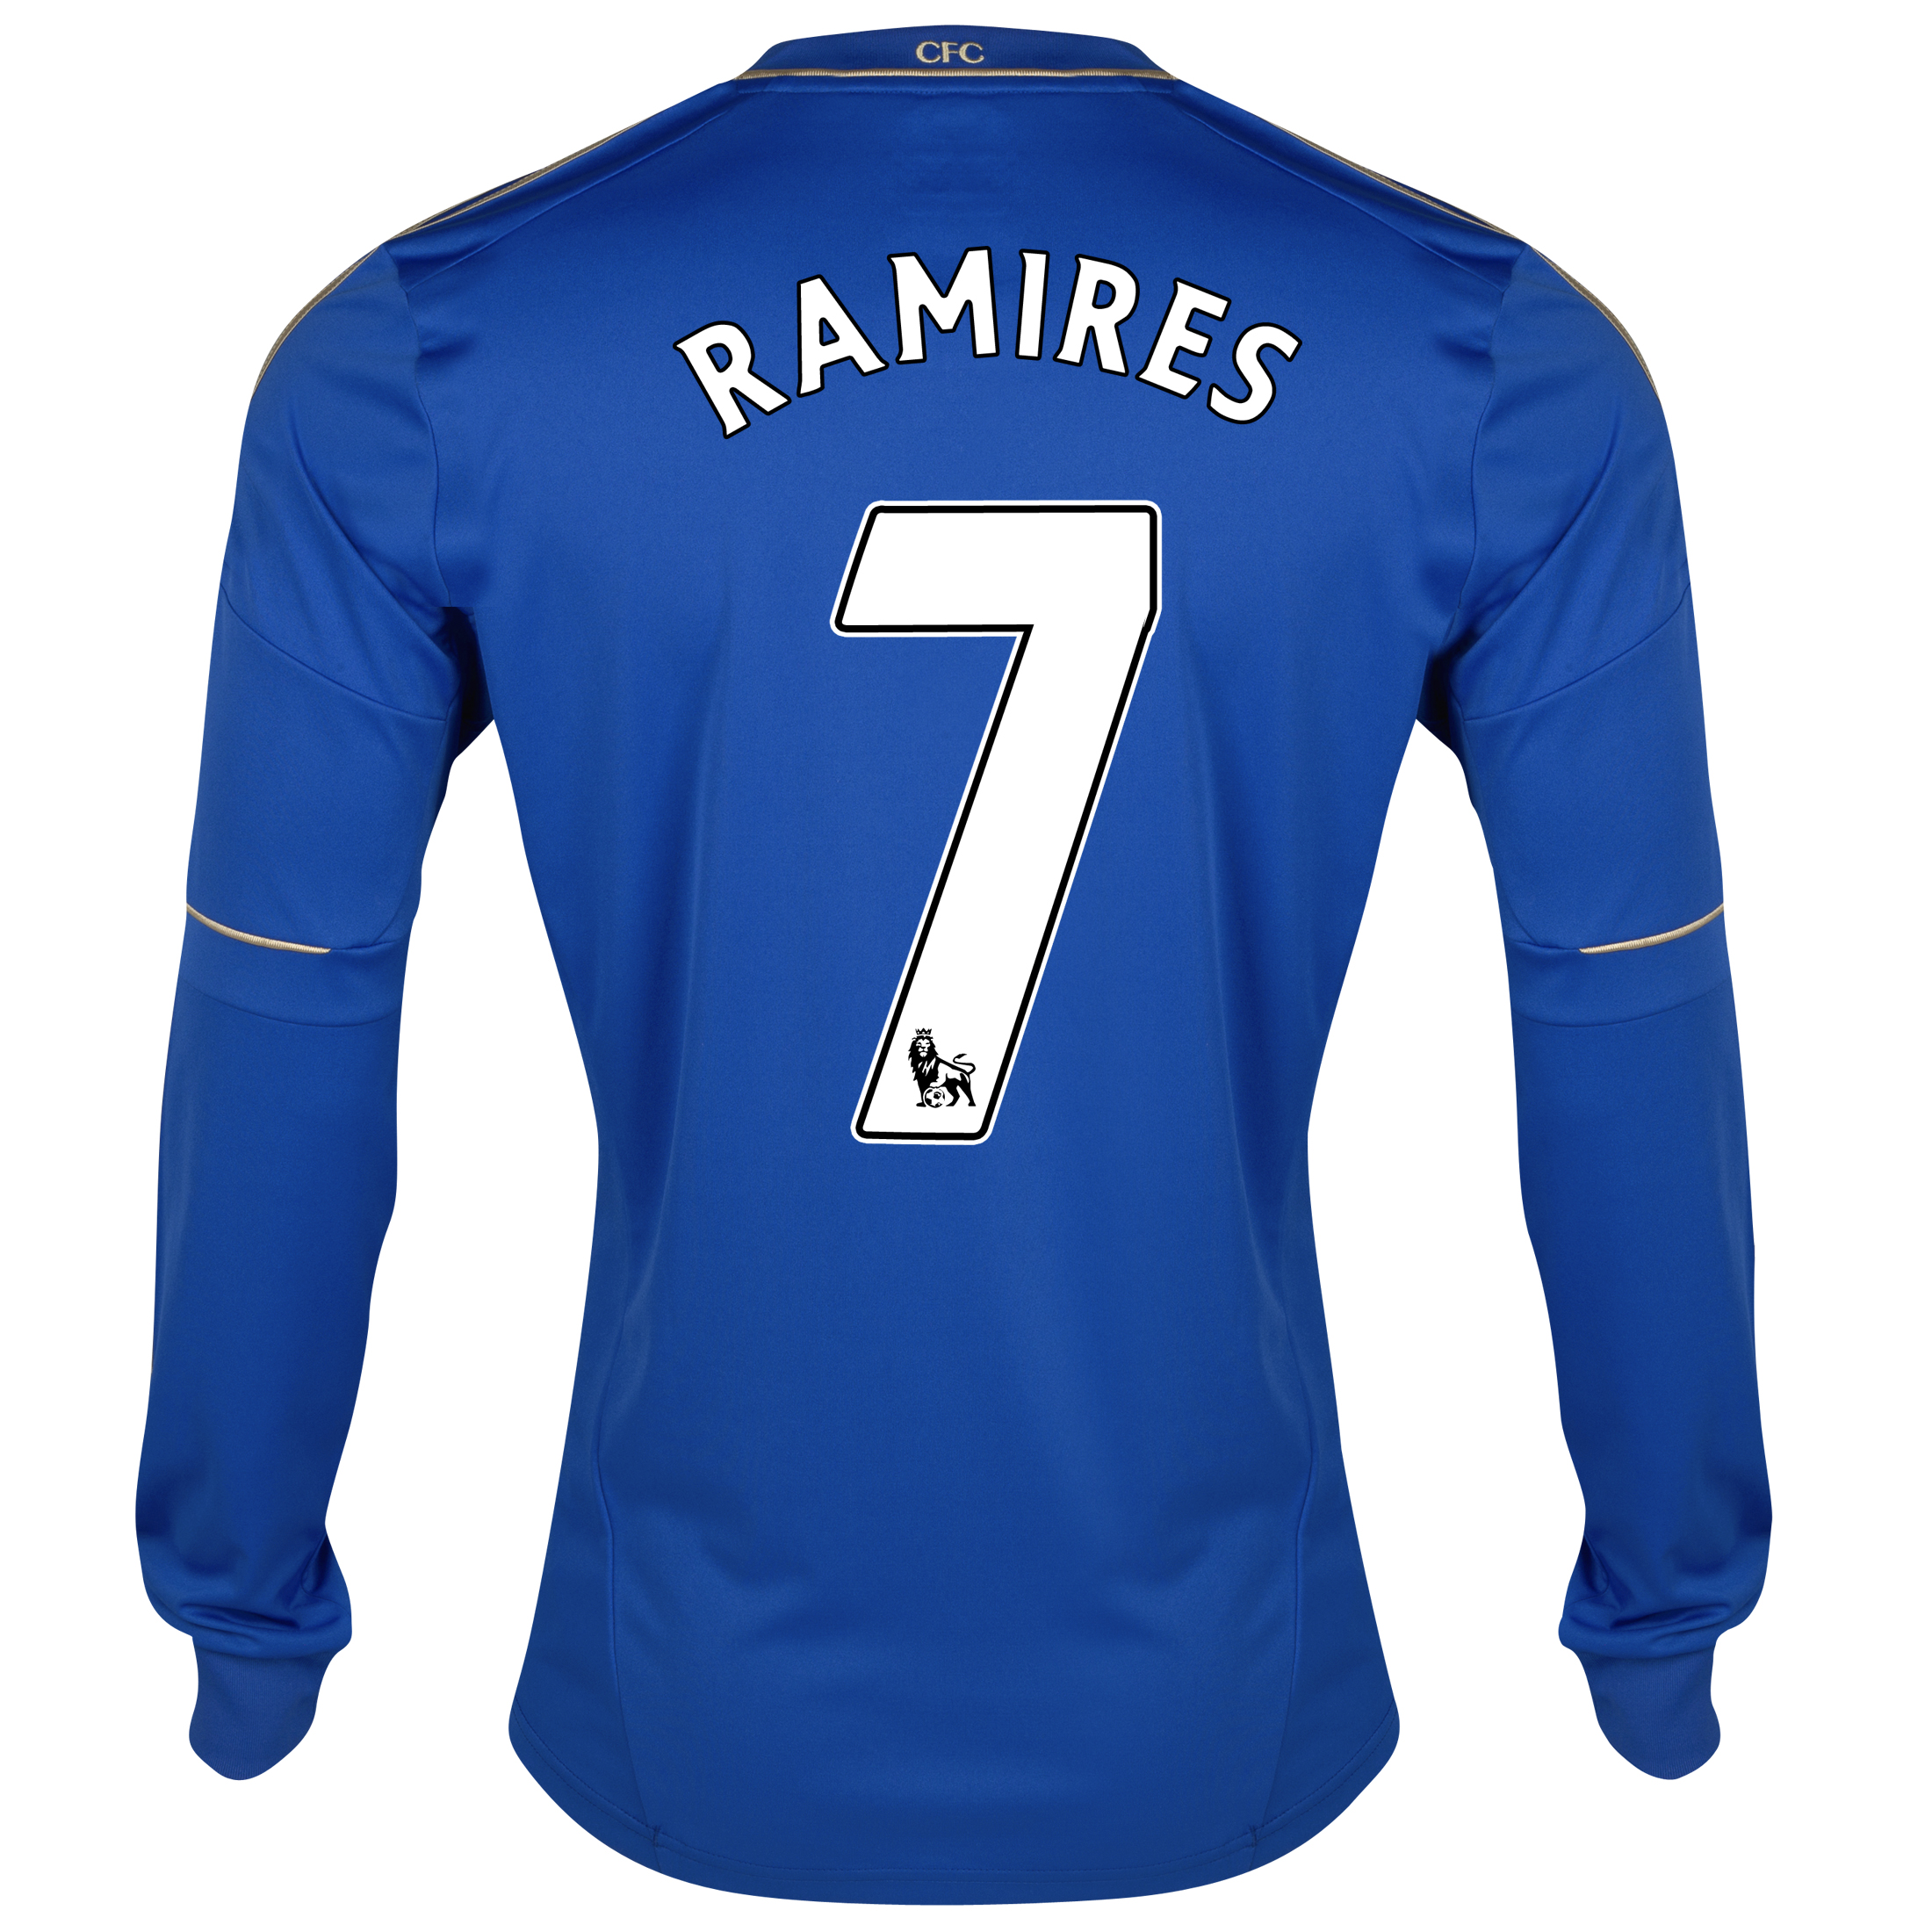 Chelsea Home Shirt 2012/13 - Long Sleeved with Ramires 7 printing